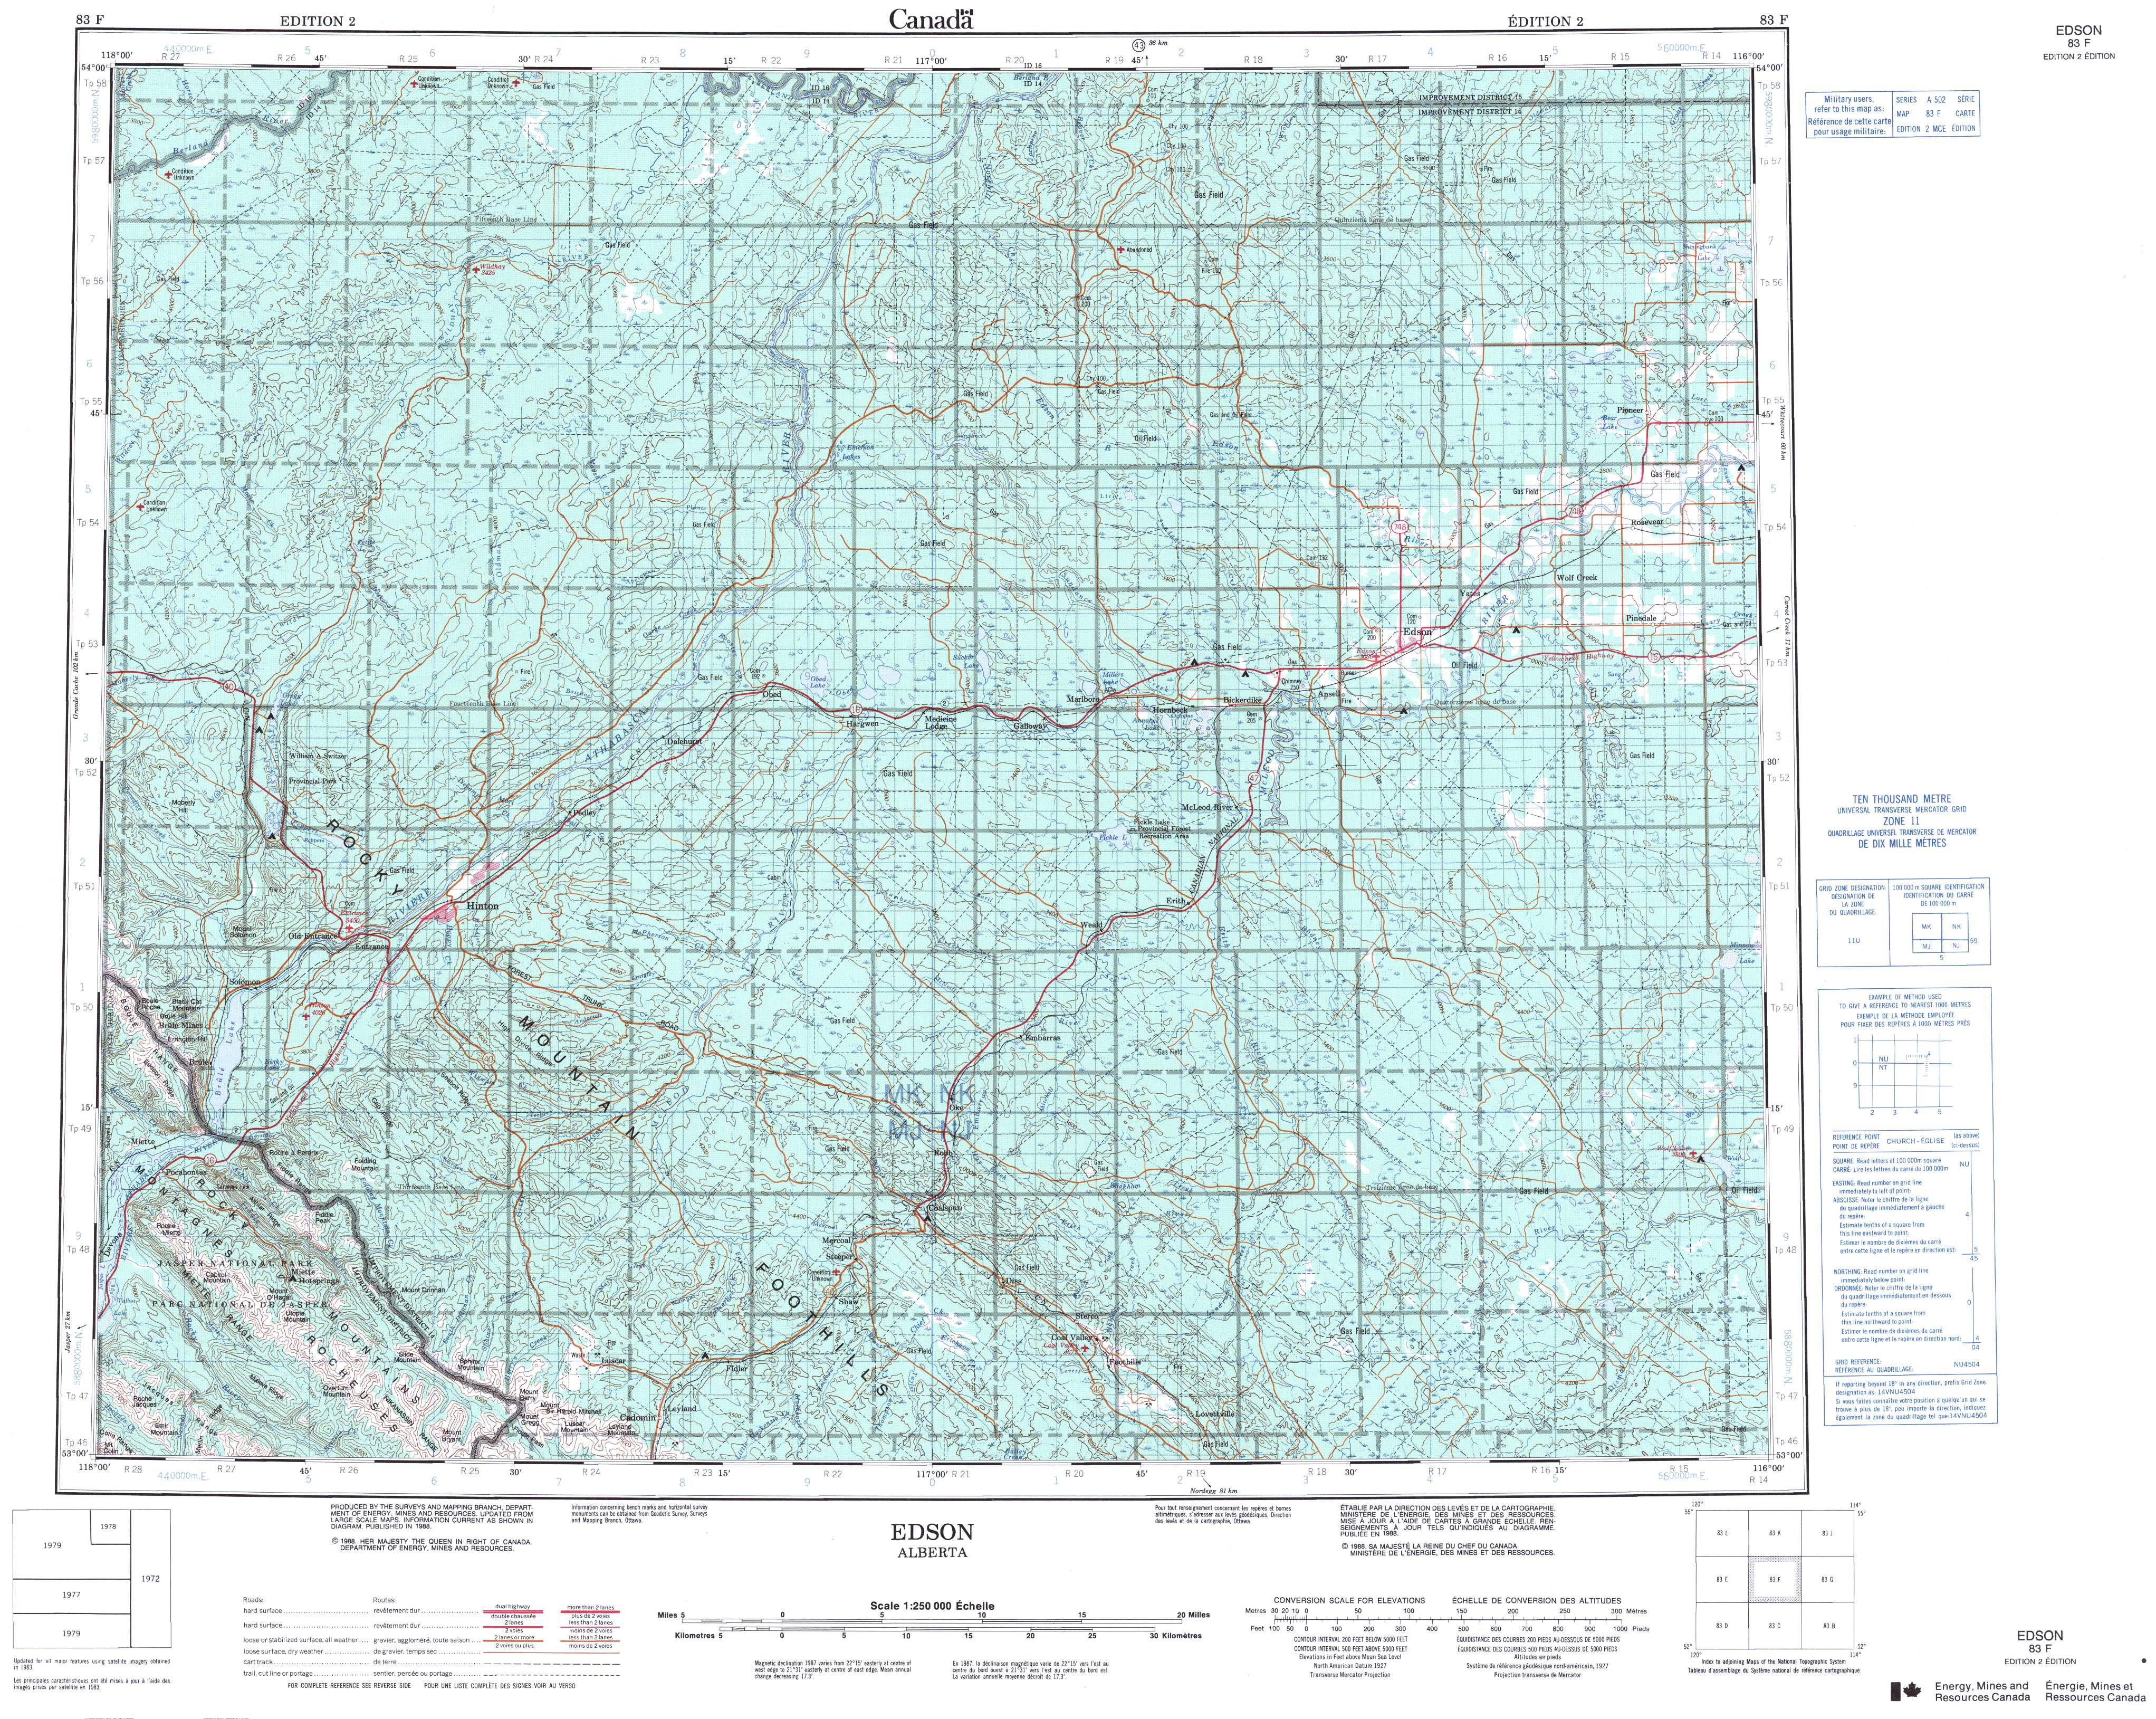 Printable Topographic Map Of Edson 083F, Ab - Free Printable Topo Maps Online